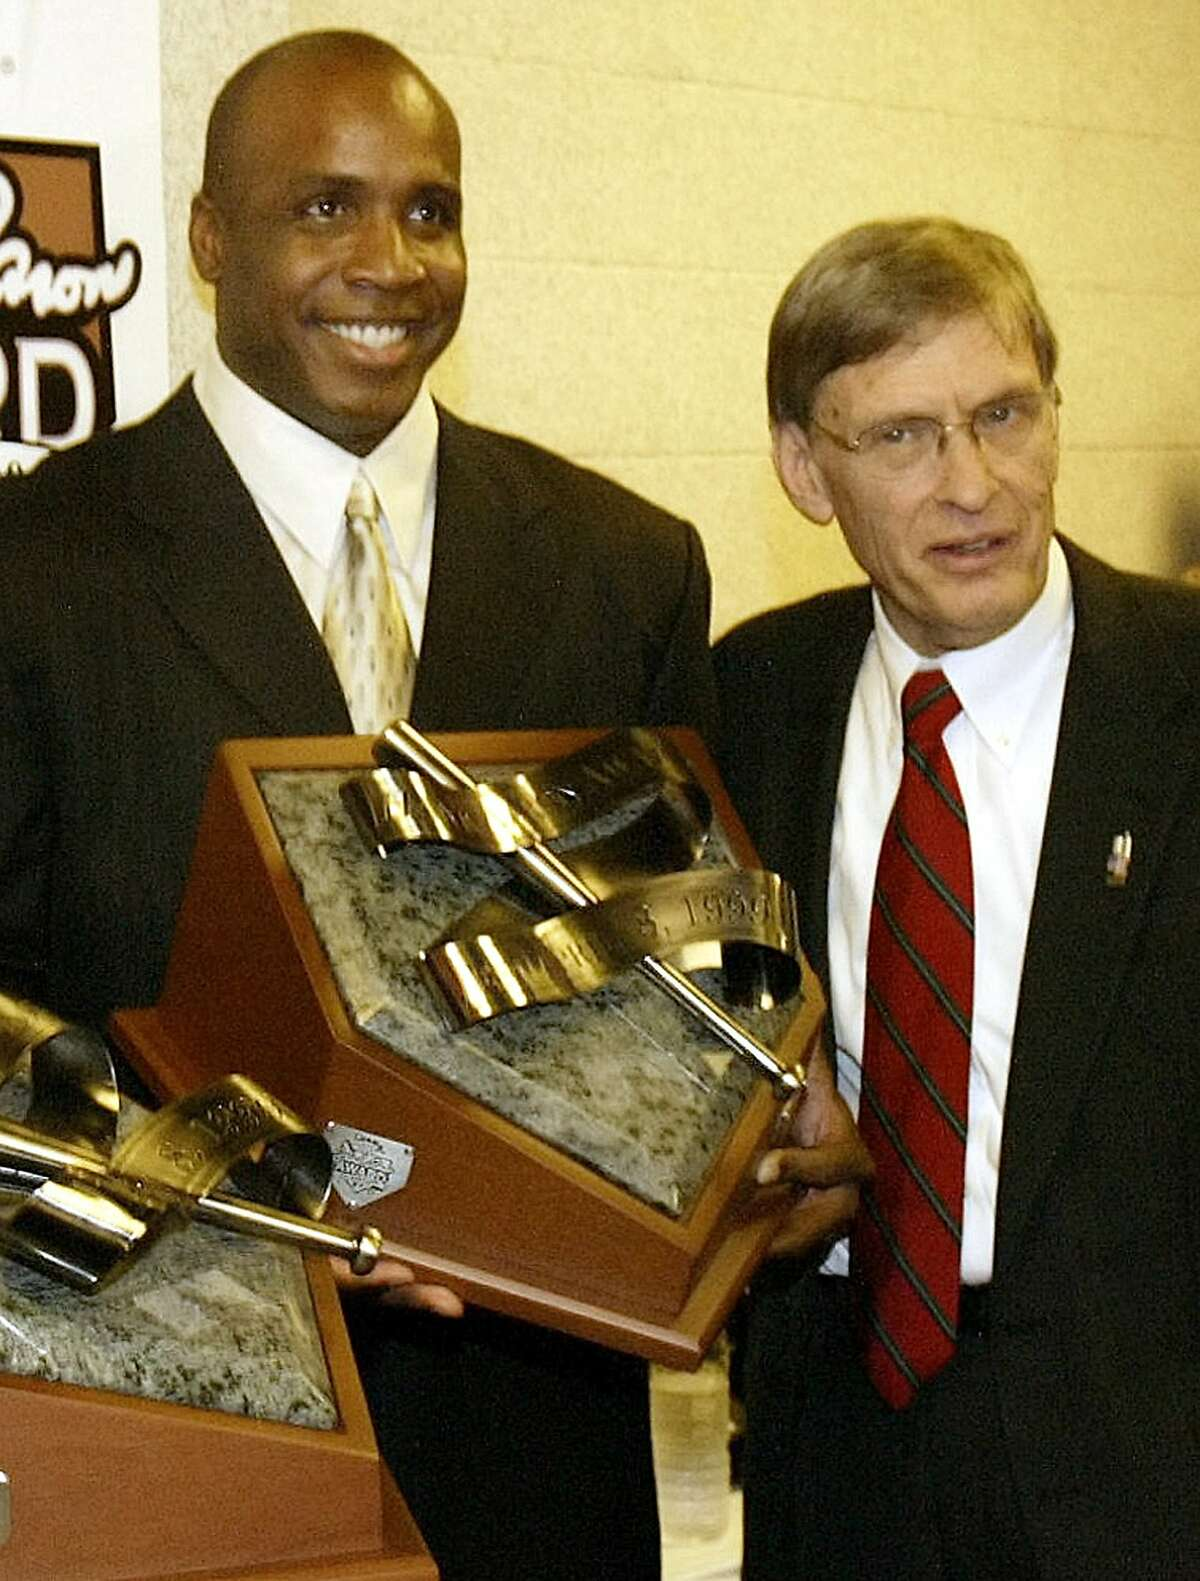 San Francisco Giants' Barry Bonds, left, holds the National League Hank Aaron award with Commissioner Bud Selig, right, during a ceremony before Game 4 of the World Series in this Oct. 27, 2004 photo in St. Louis.